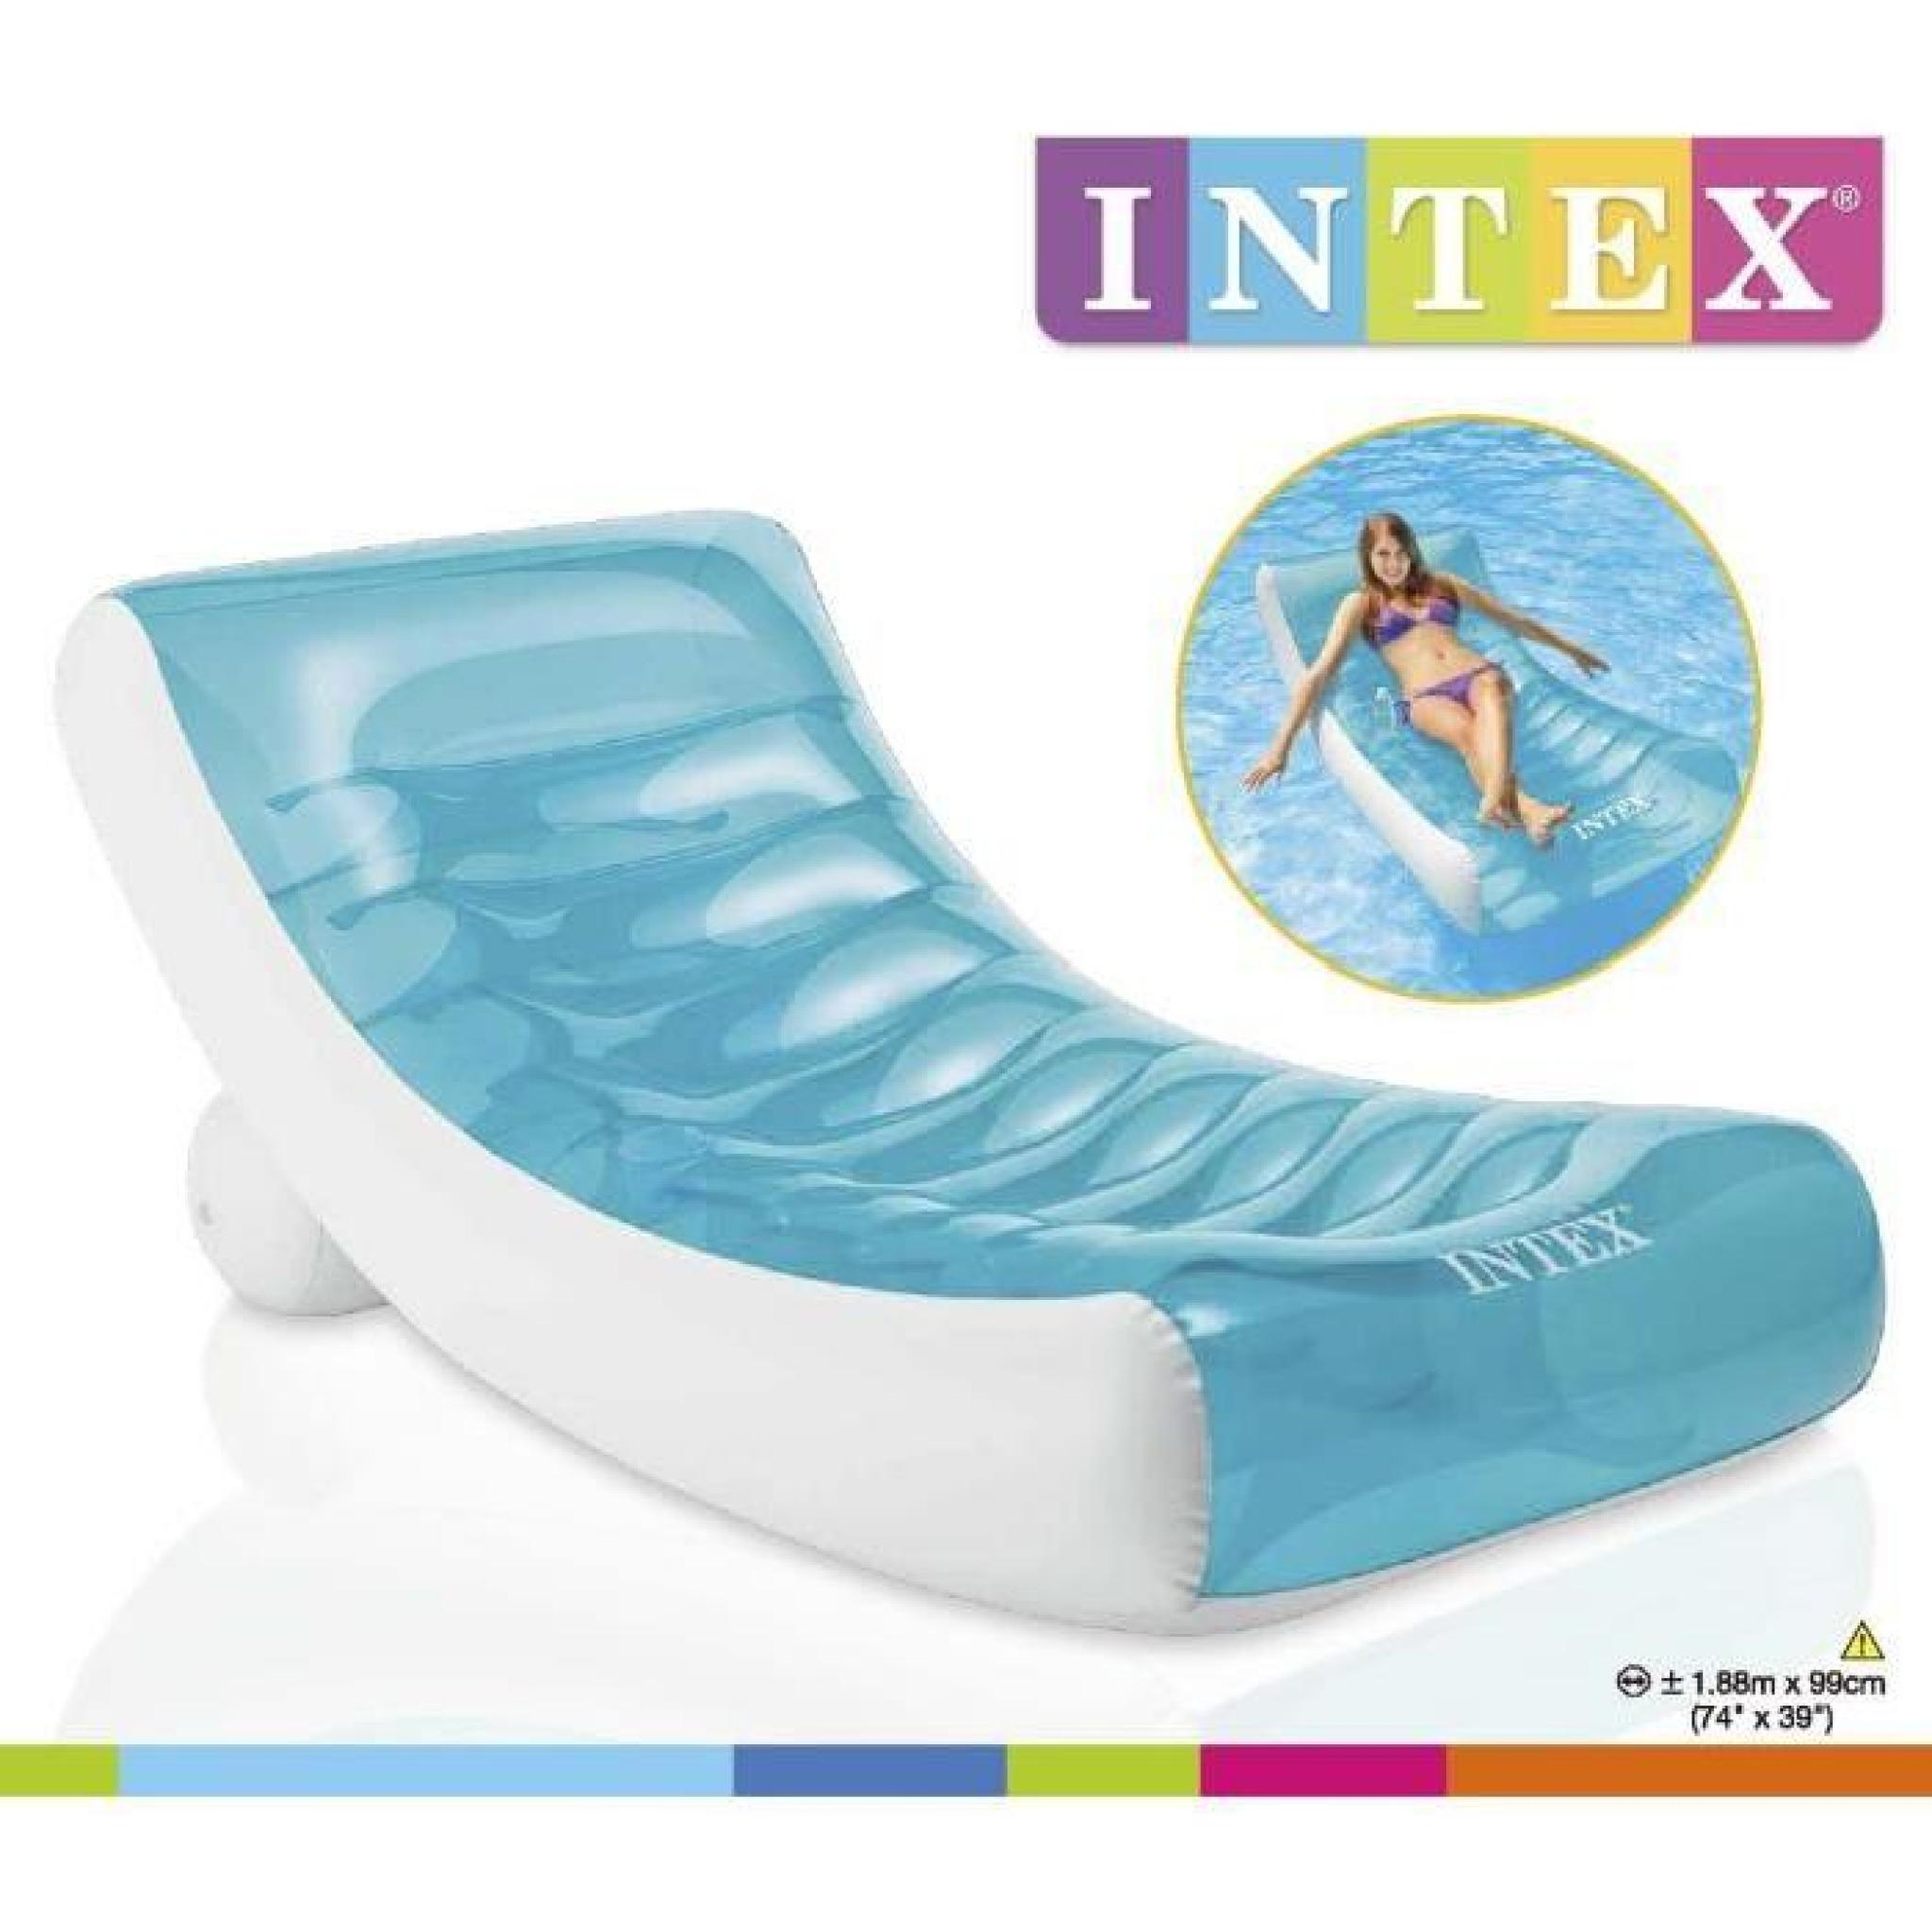 Intex Matelas Gonflable Adulte Pour Piscine Lounge 188 X 99 Cm destiné Matelas Piscine Intex